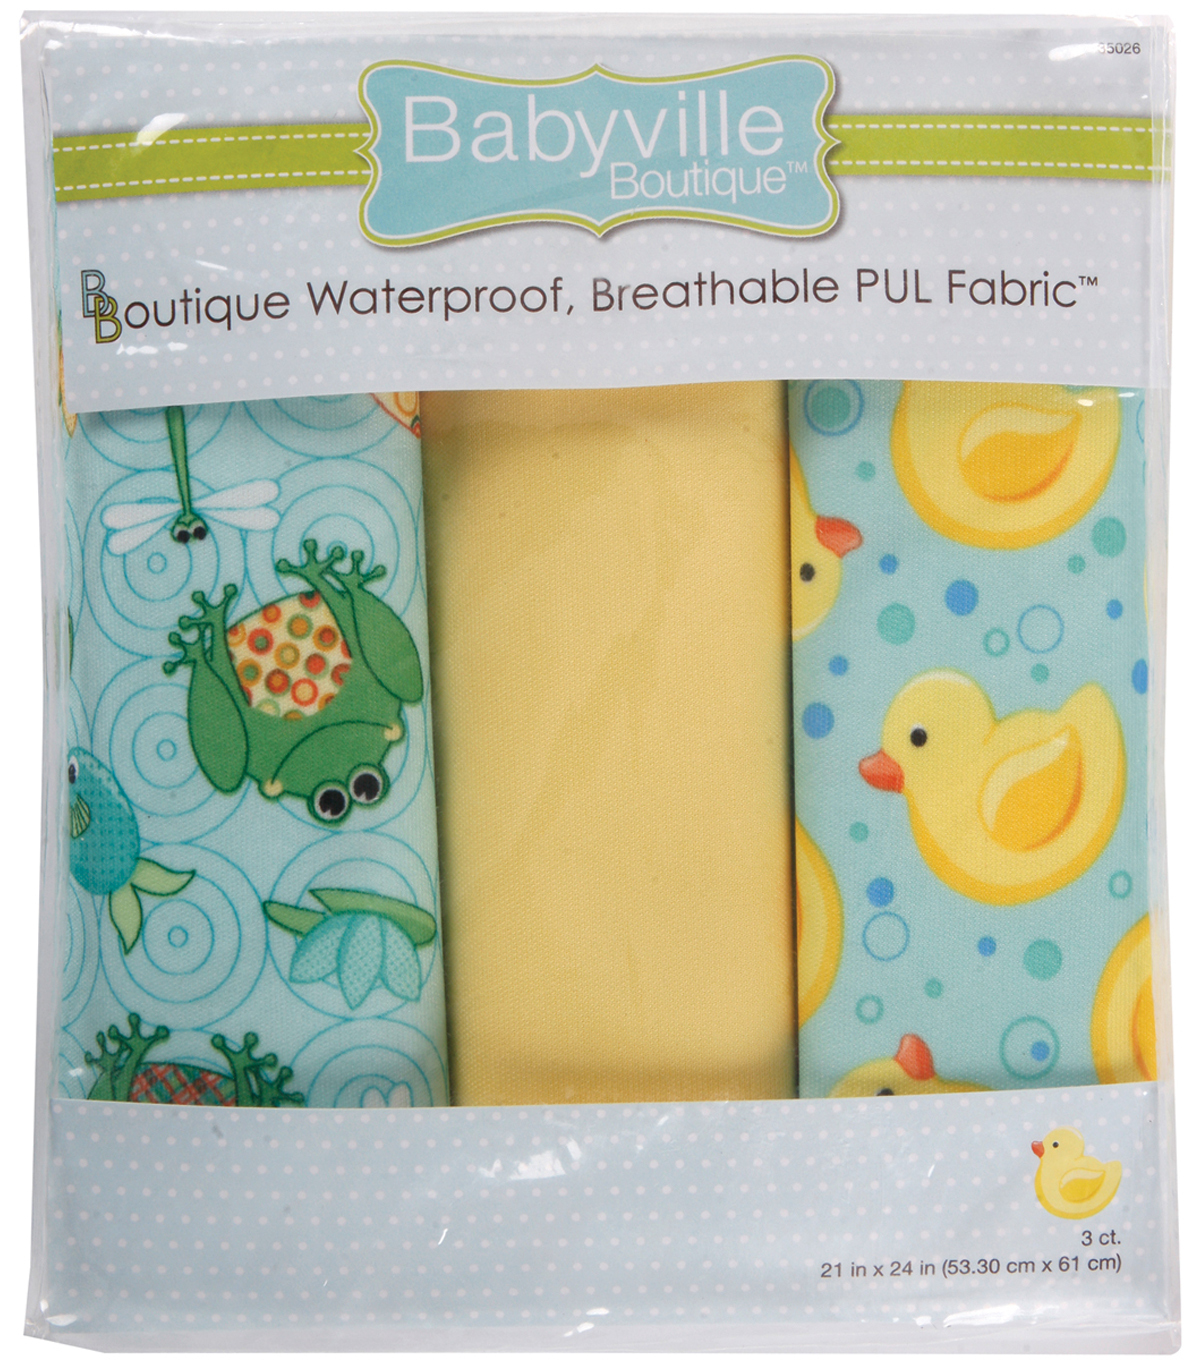 Babyville Playful Waterproof Diaper Fabric Pond & Ducks